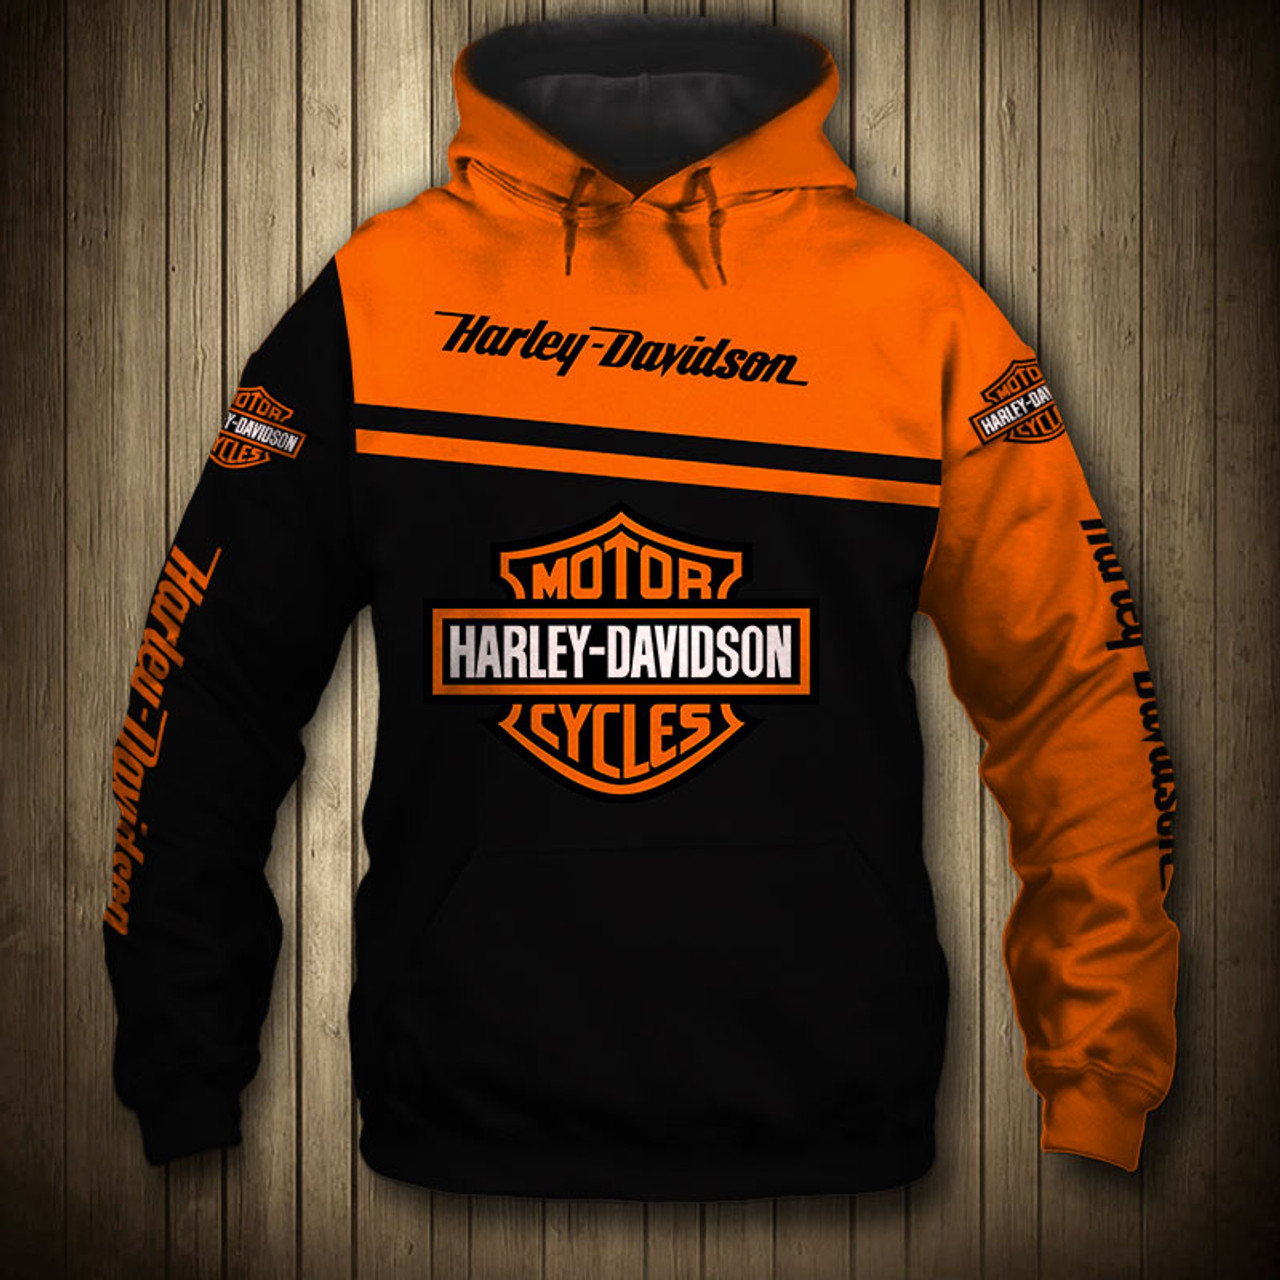 Harley Davidson Colors >> Official Harley Davidson Pullover Biker Hoodies Official Harley Biker Colors Official Classic Harley Logos Nice New Custom 3d Graphic Printed D